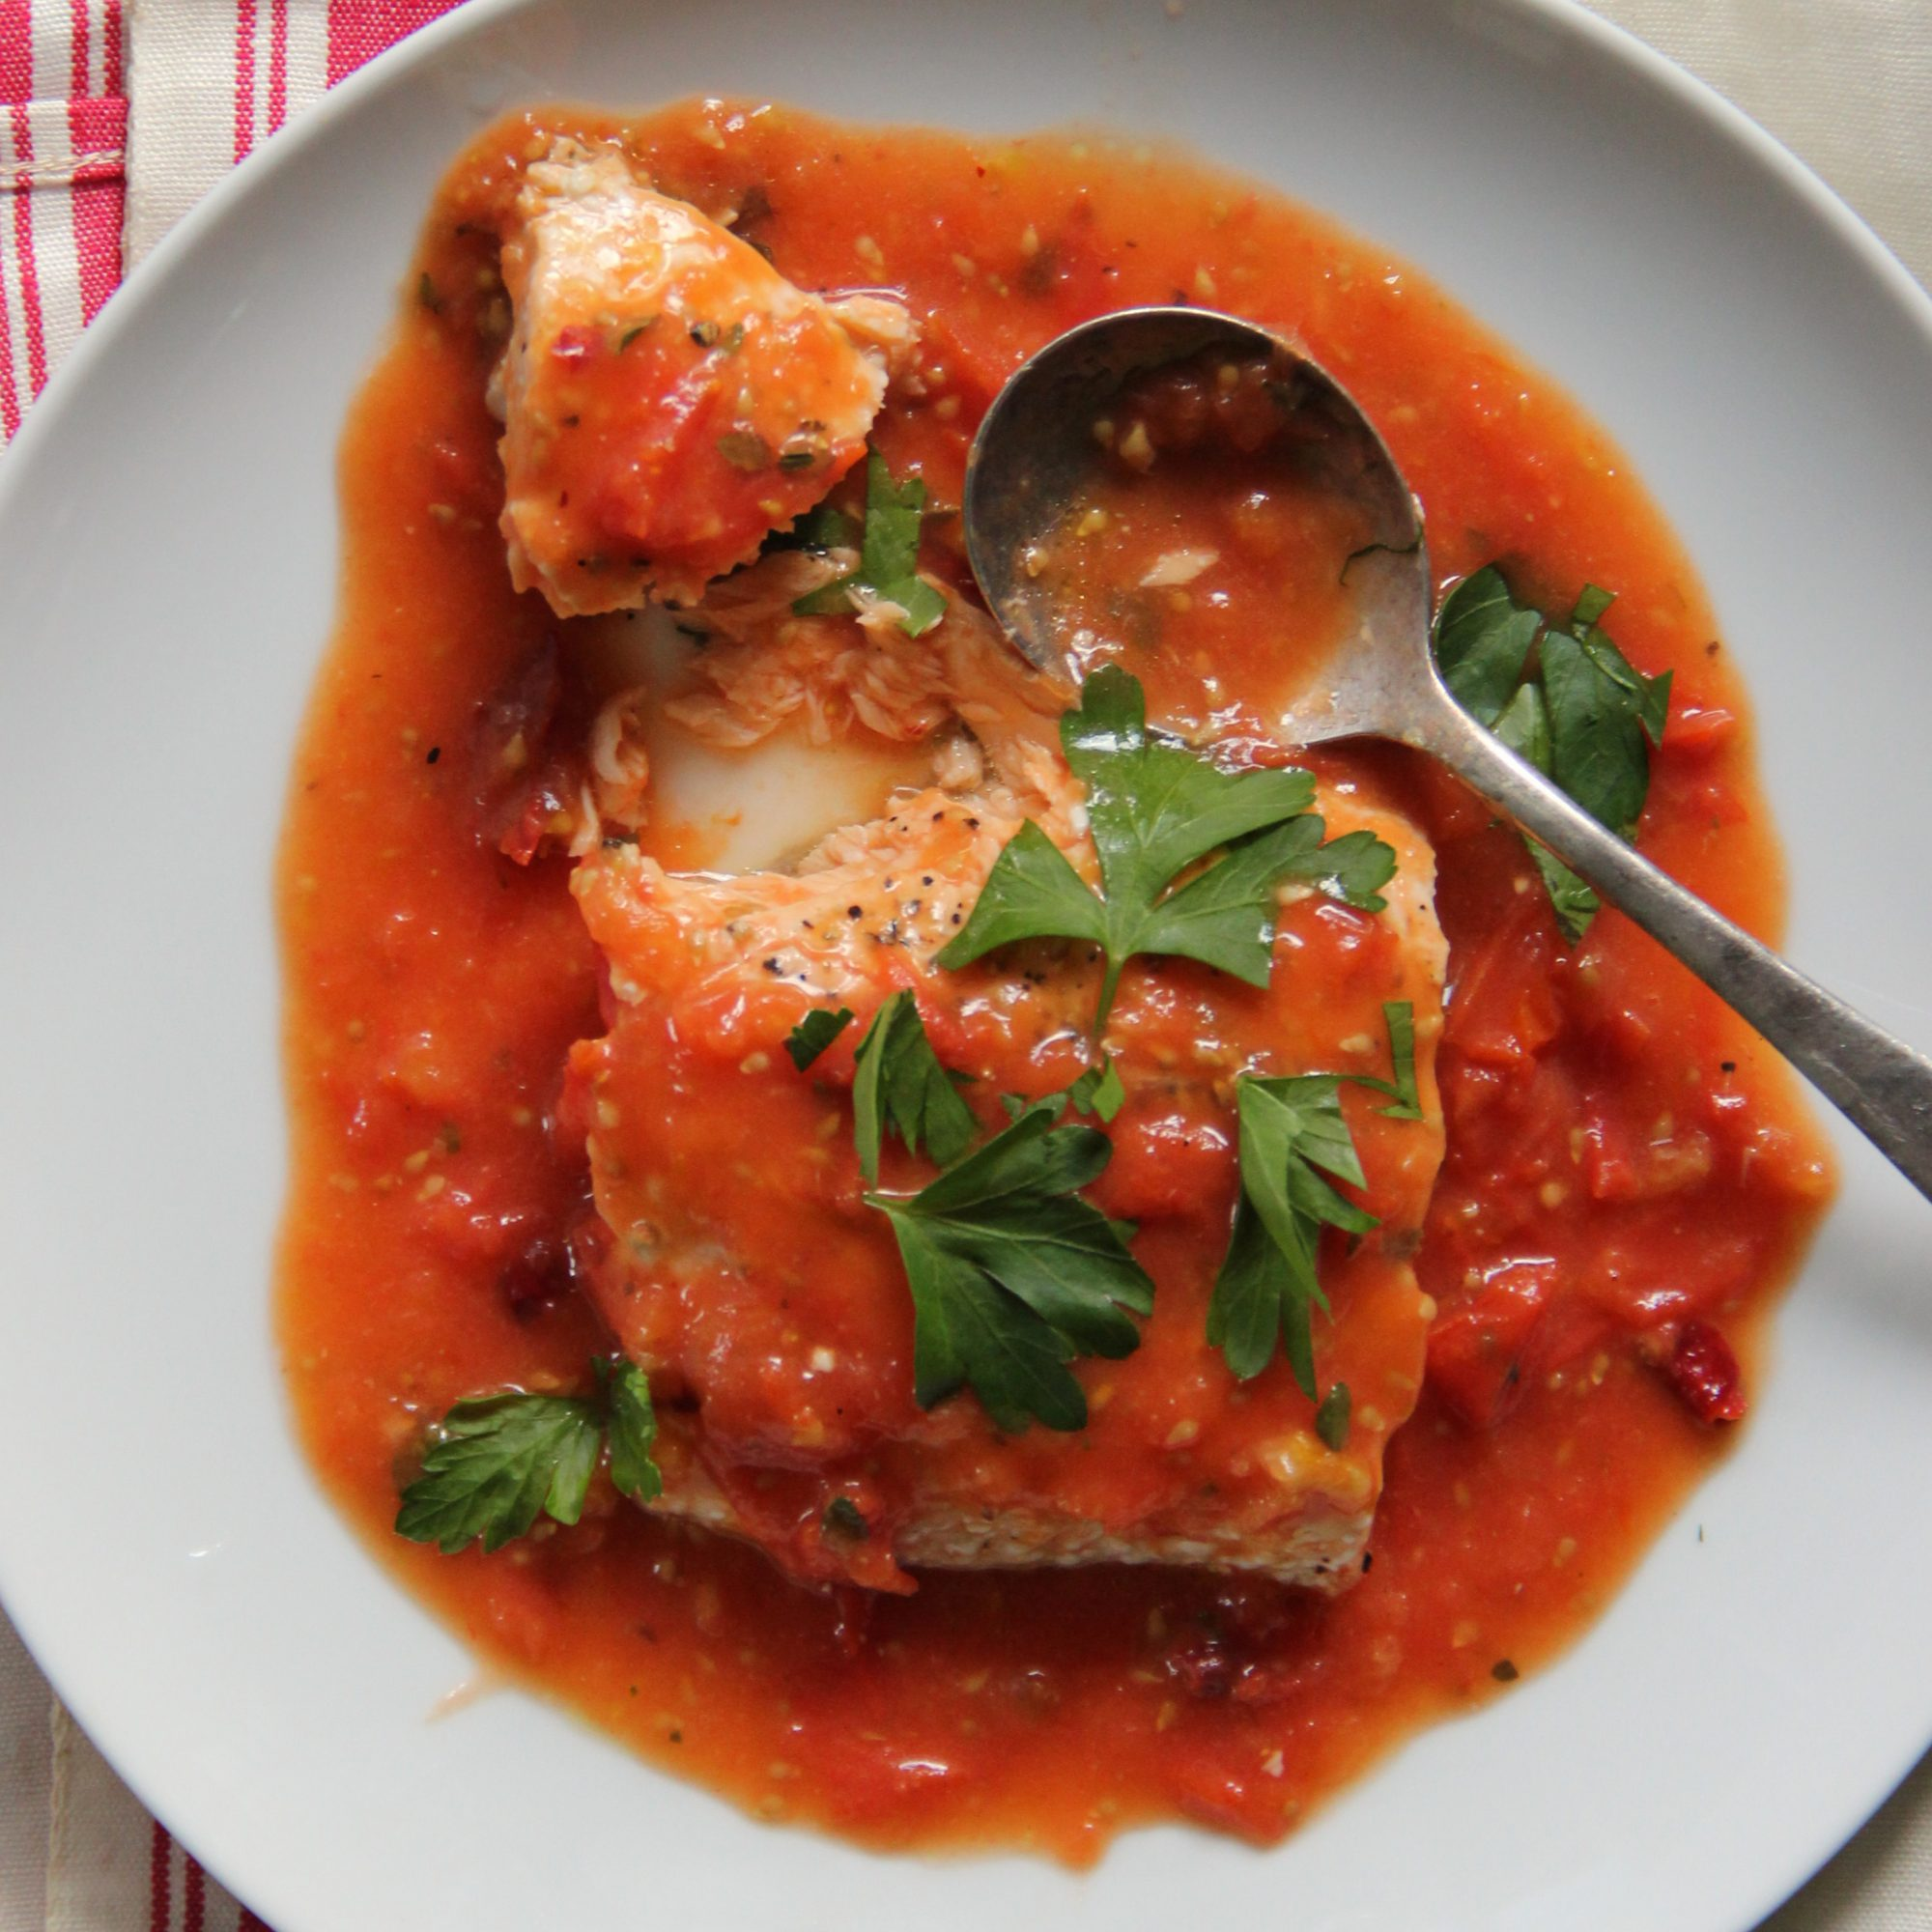 201503-r-slow-baked-salmon-in-fresh-tomato-sauce.jpg